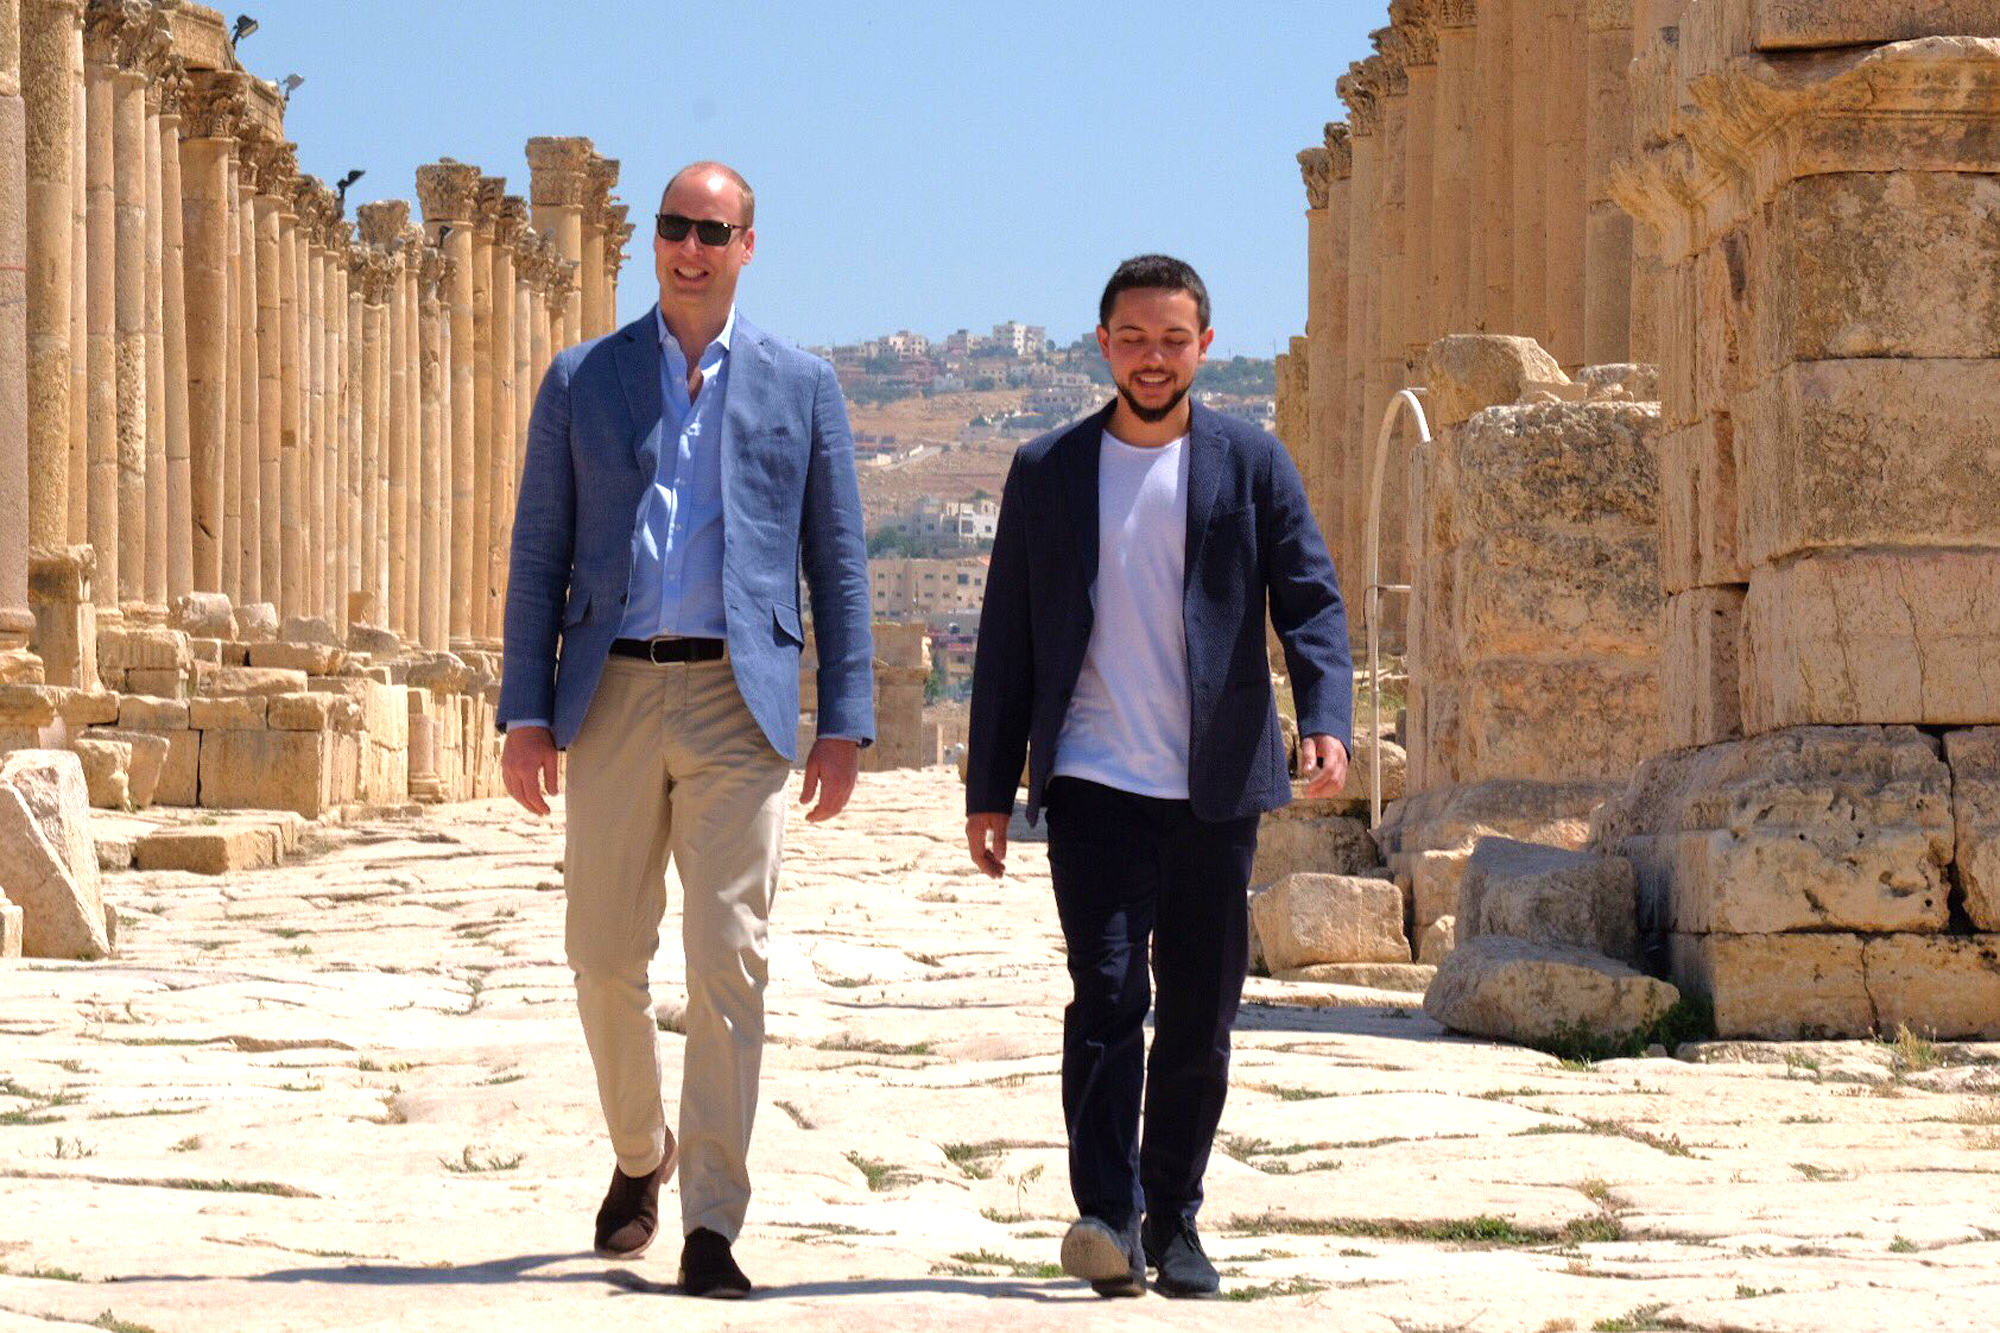 Prince William Middle East Tour, Amman, Jordan  - 25 Jun 2018